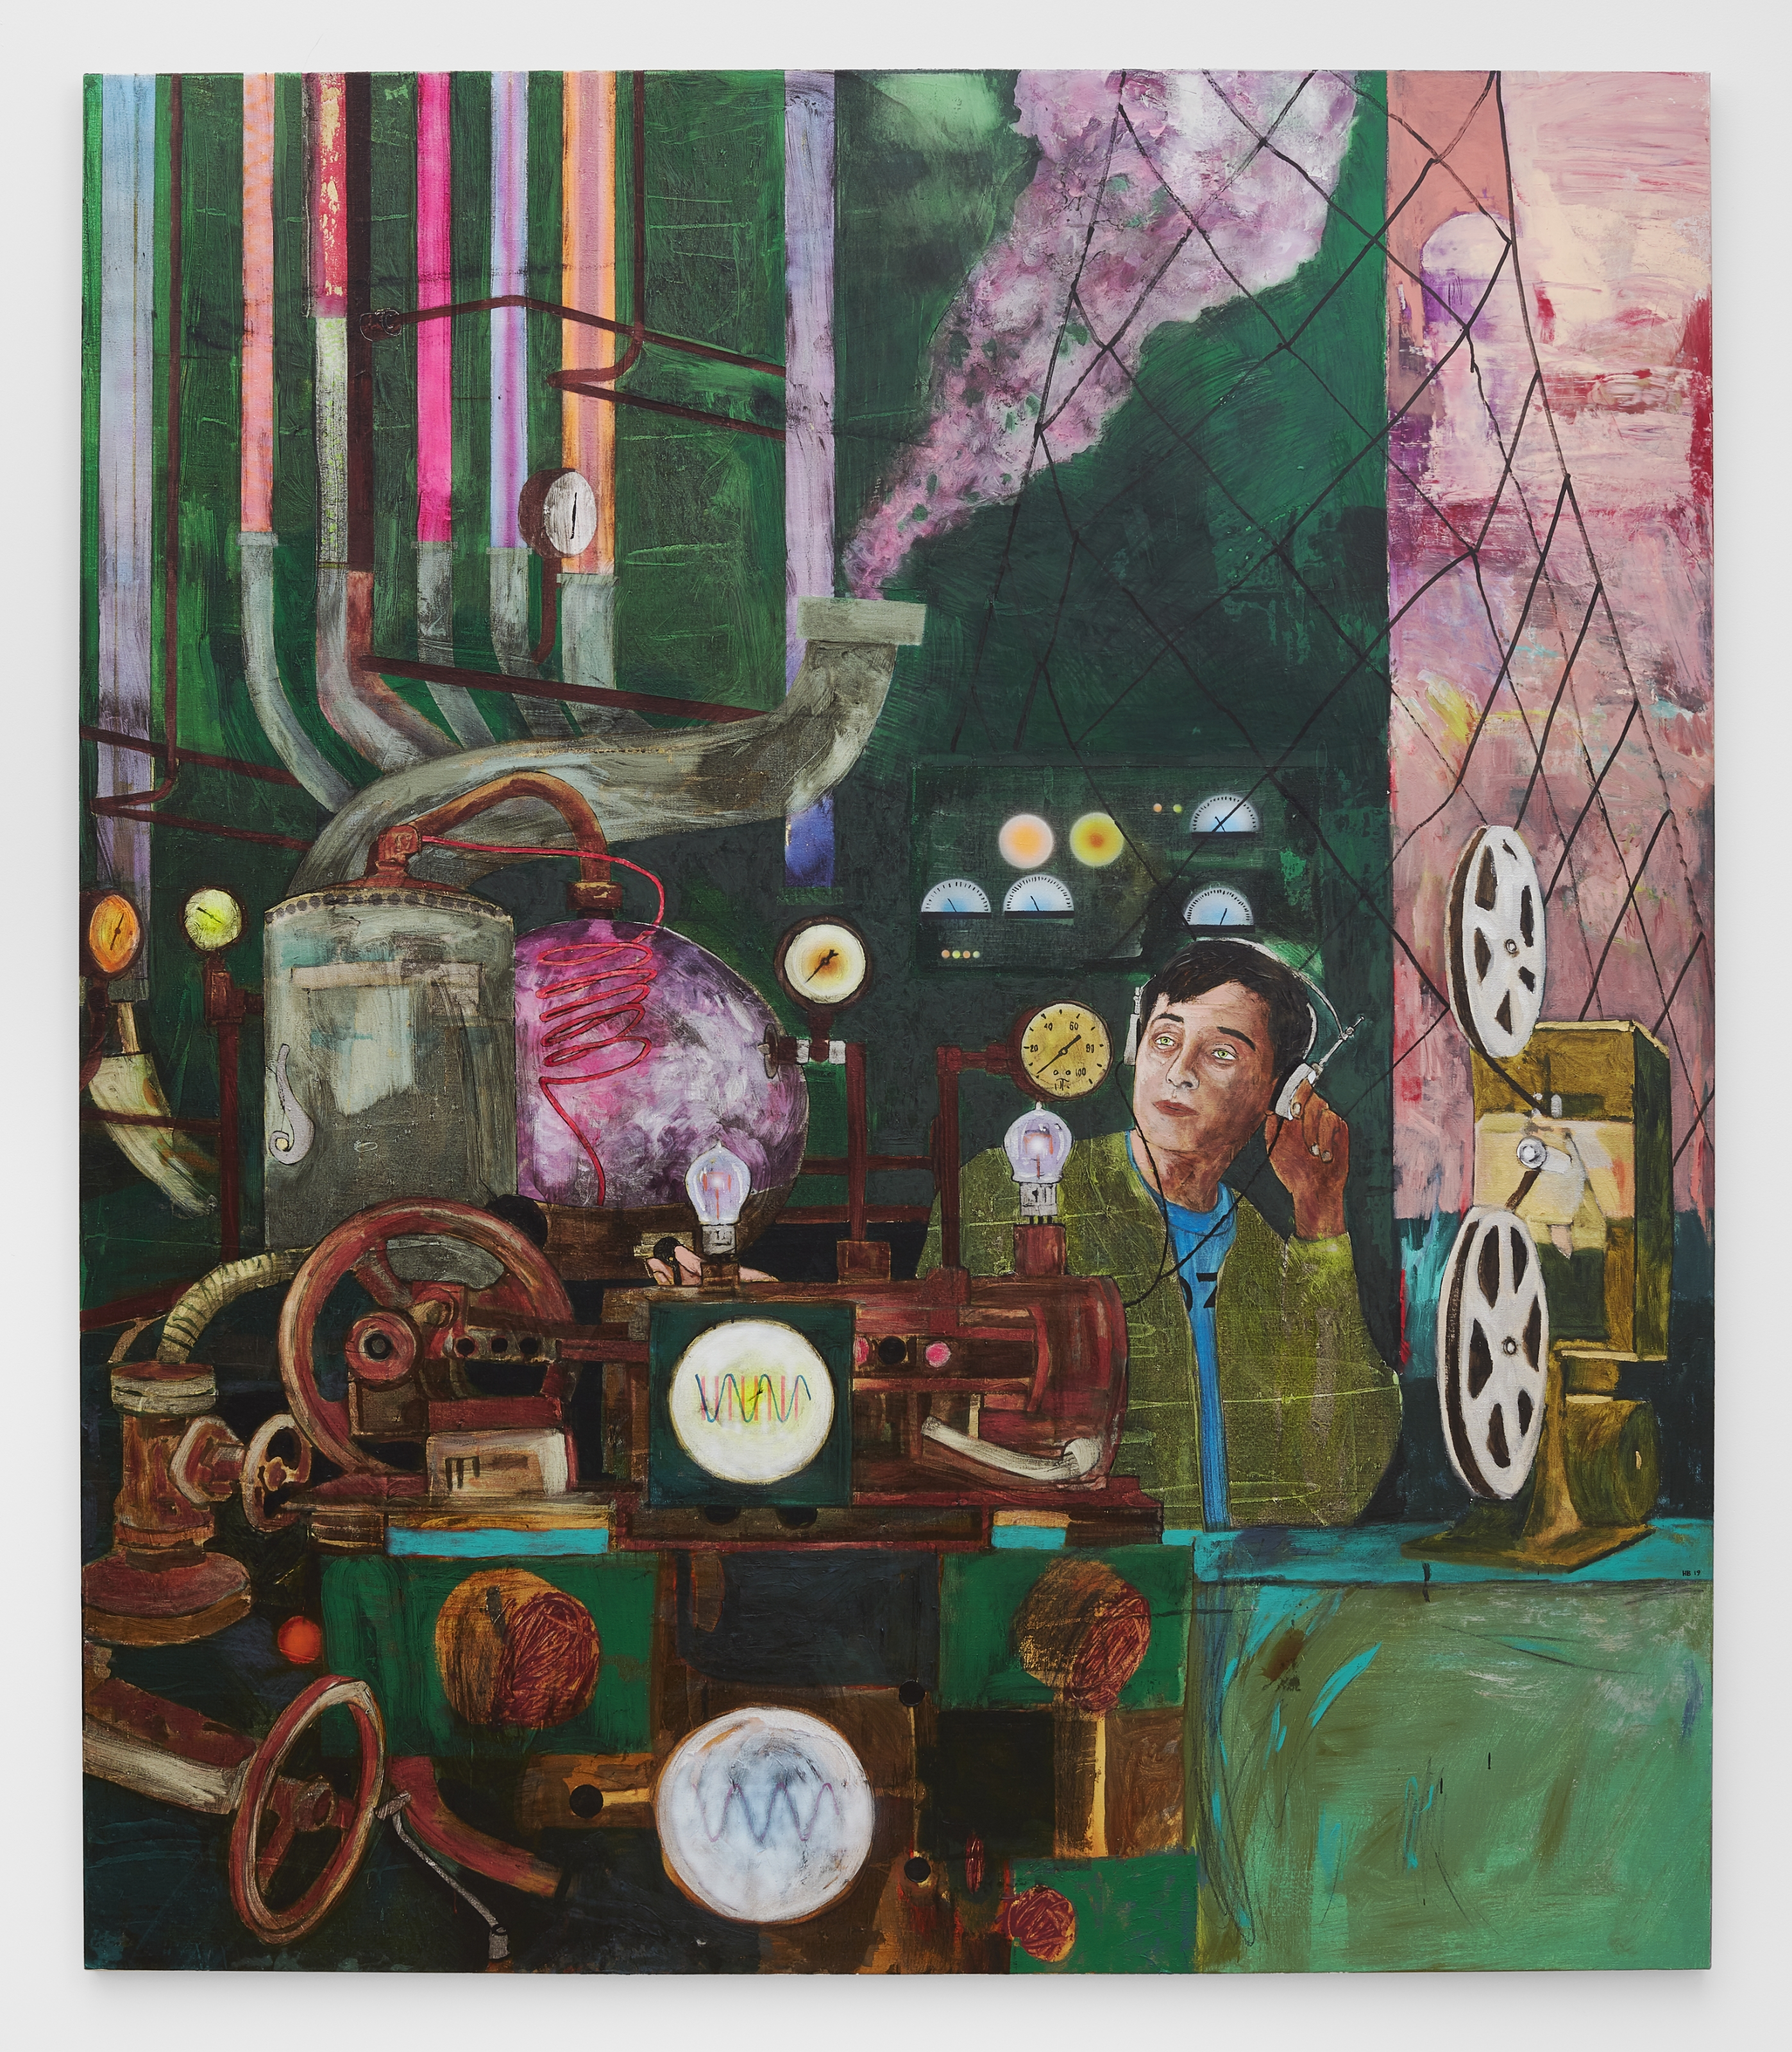 HERNAN BAS, The Great and Powerful OZ's AV Guy (Or, Behind the Other Curtain), 2019